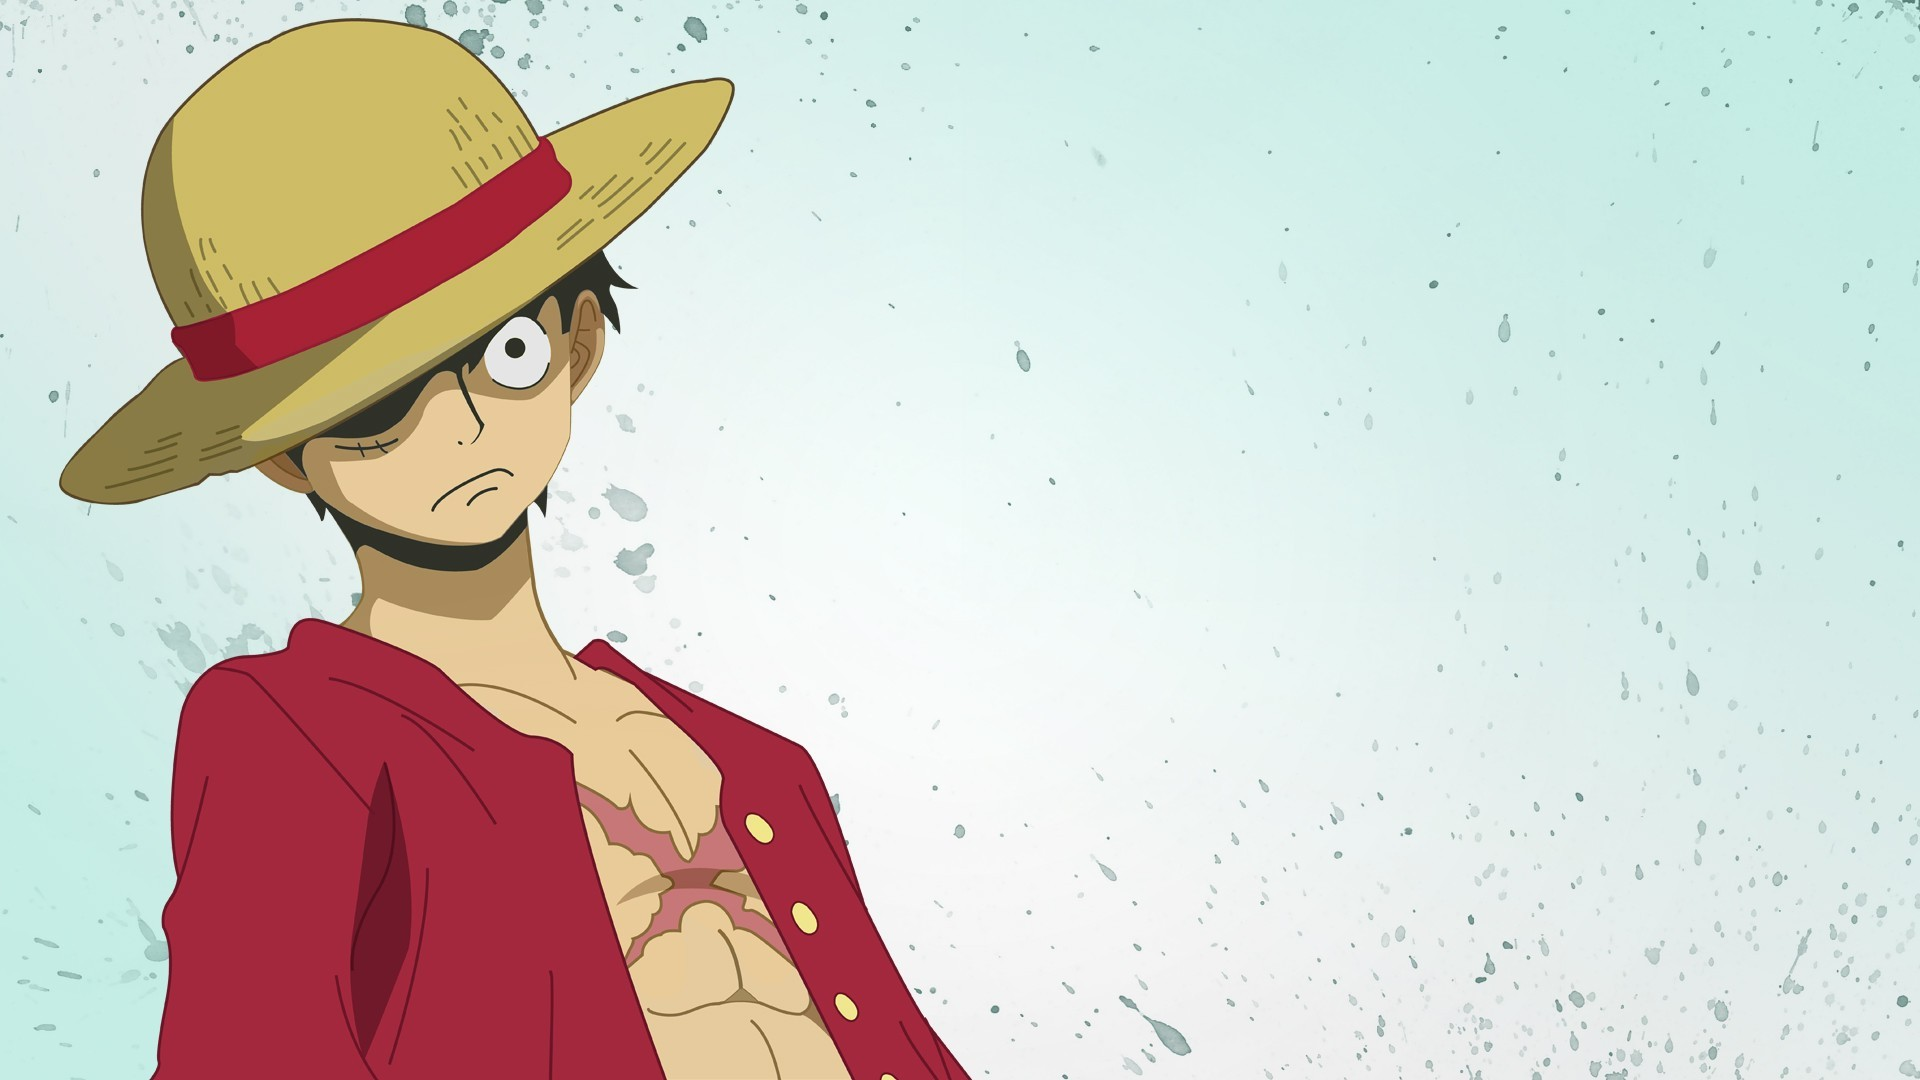 One Piece Luffy Wallpaper High Res 5807 Wallpaper Cool 1920x1080